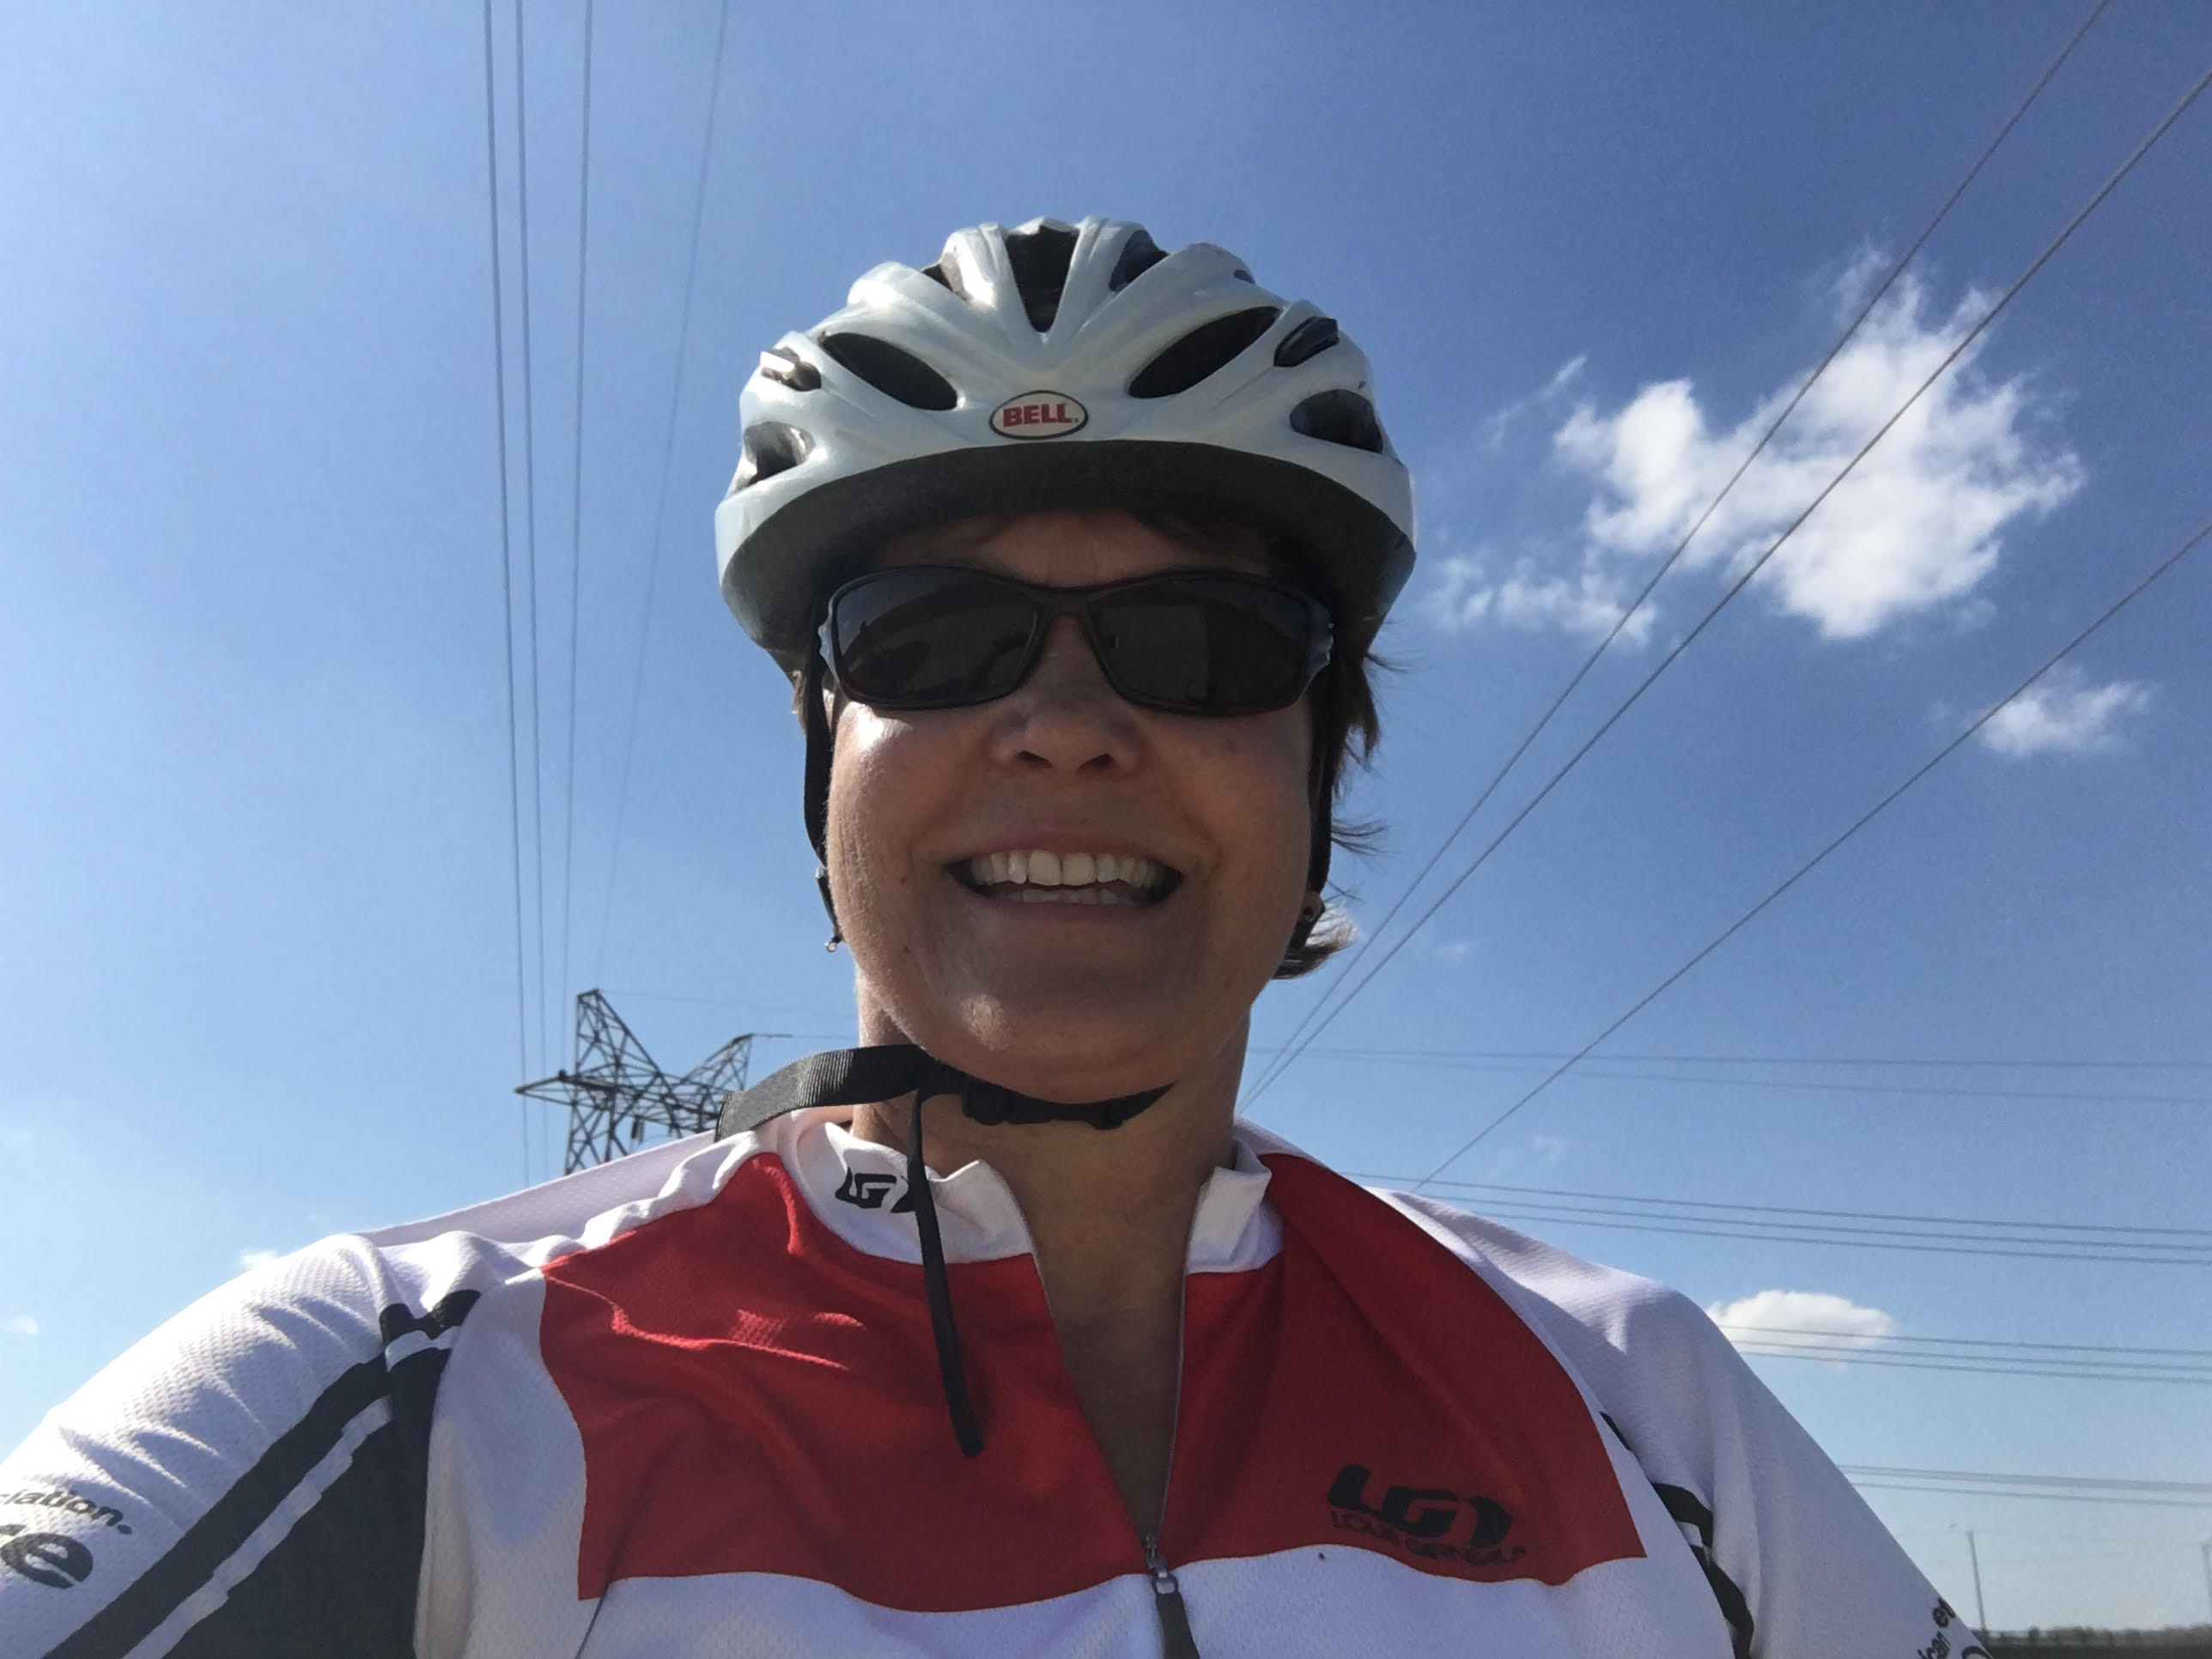 Grandma With Diabetes for 40 Years Rides Her Bicycle Across